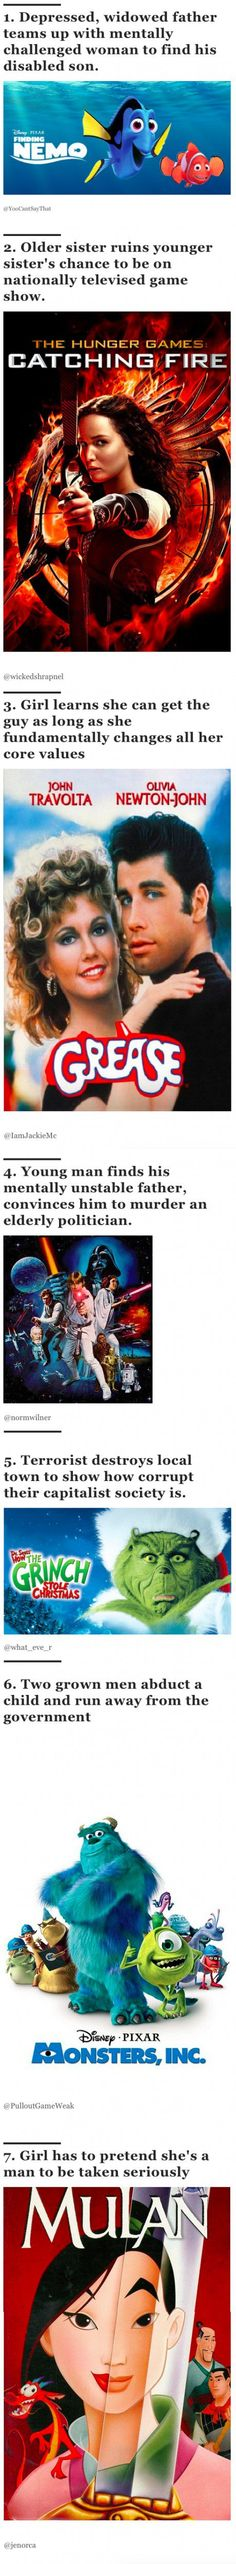 22 Poorly Explained Film Plots That Are So Bad They're Good.